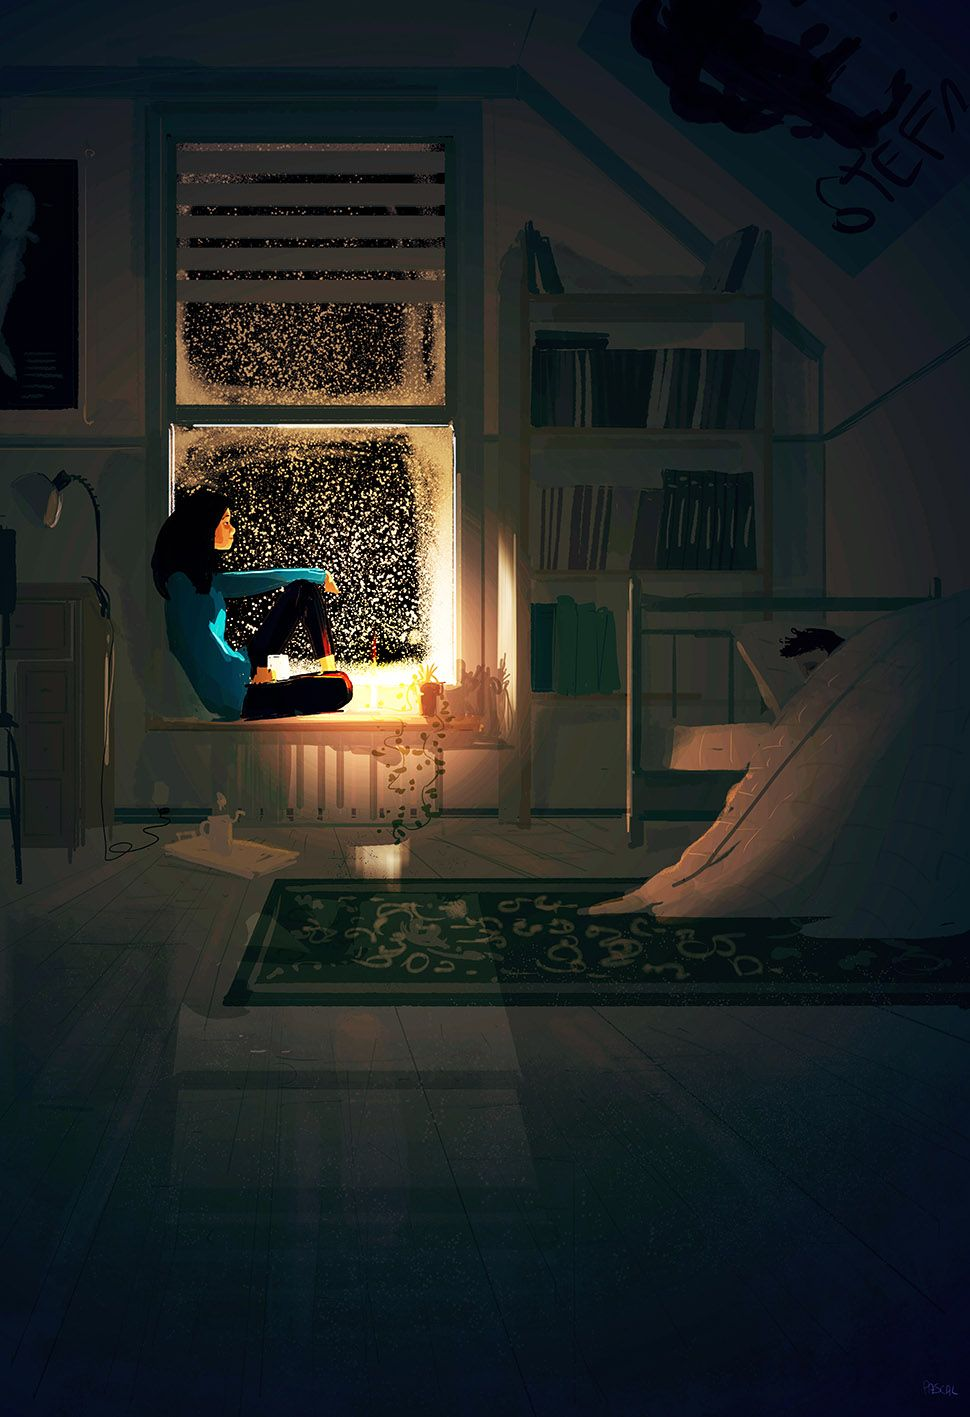 It's been an eventful day, a lot is still on the mind. Flashes of images I've seen throughout the day. Words from strangers resonating inside my head. Sitting here, watching the snow fall, has been the first moment of tranquility I've experienced today (Blackout - Pascal Campion)